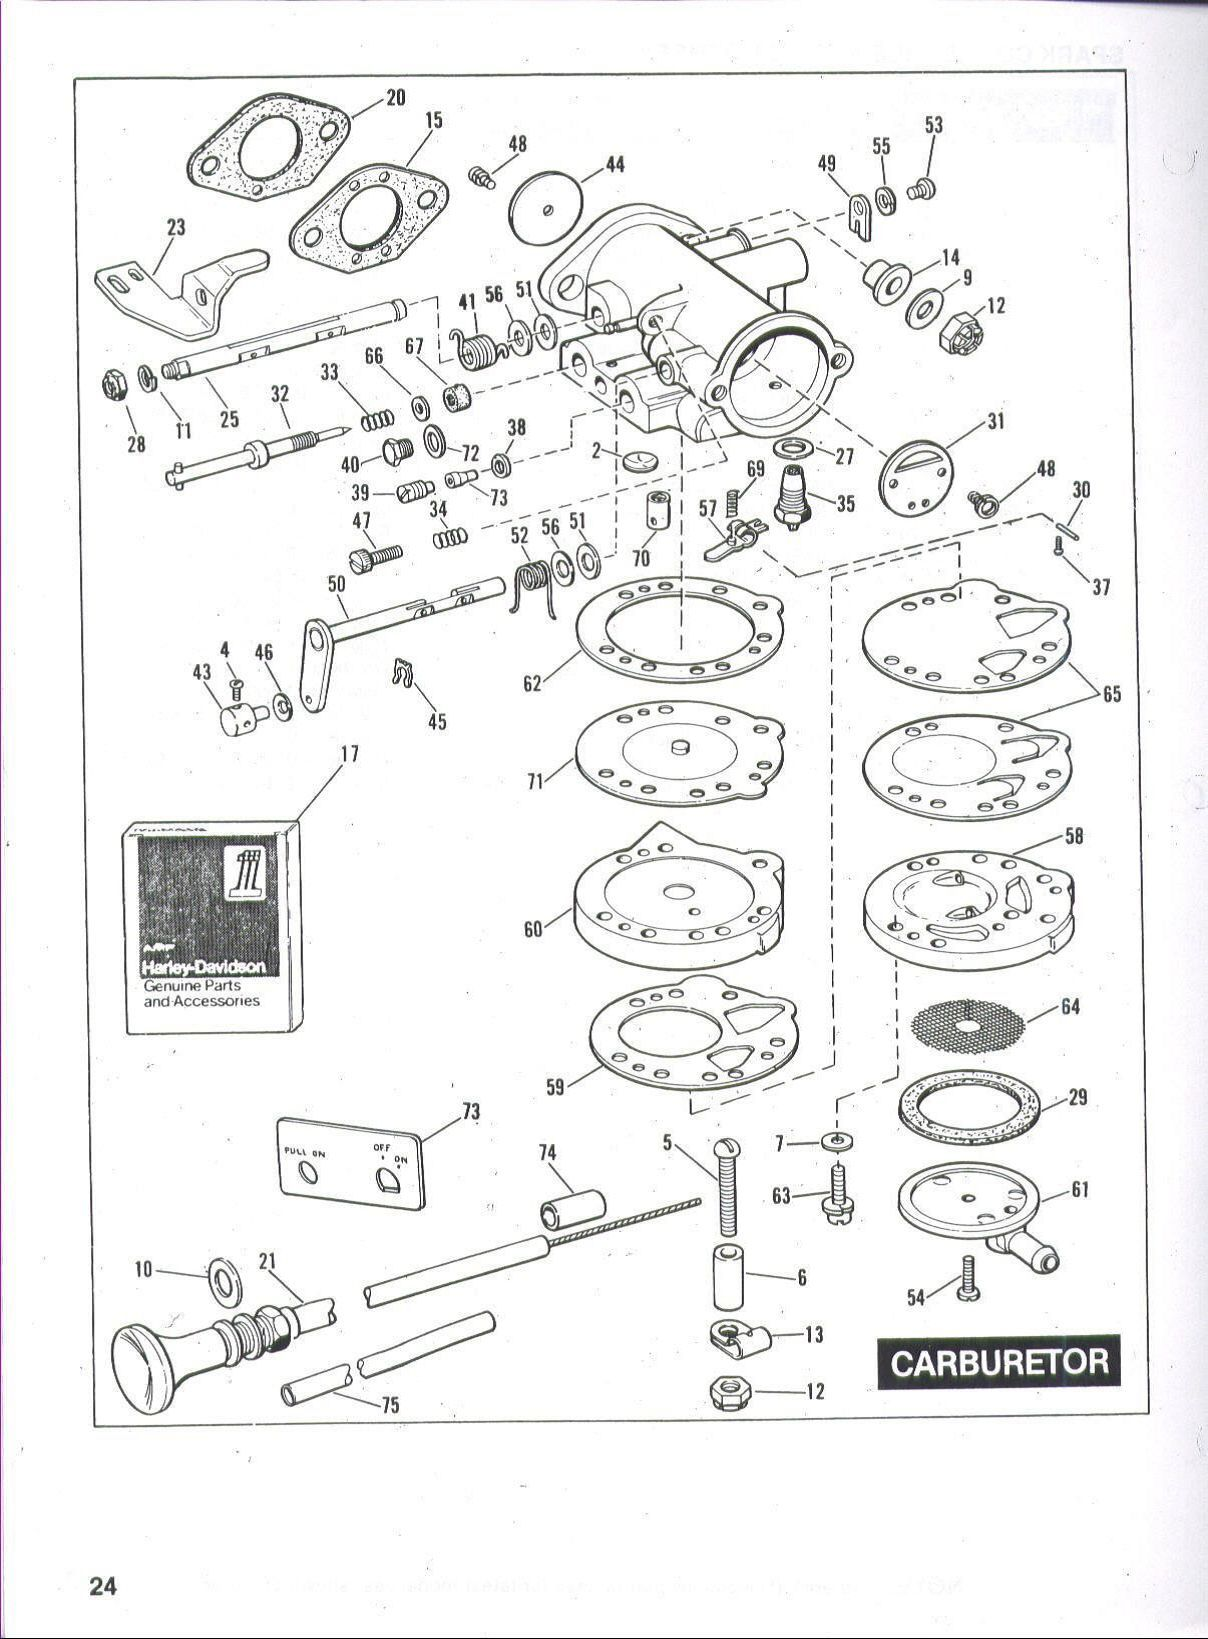 Harley-Davidson Golf Cart Carburetor Diagram | UTV stuff